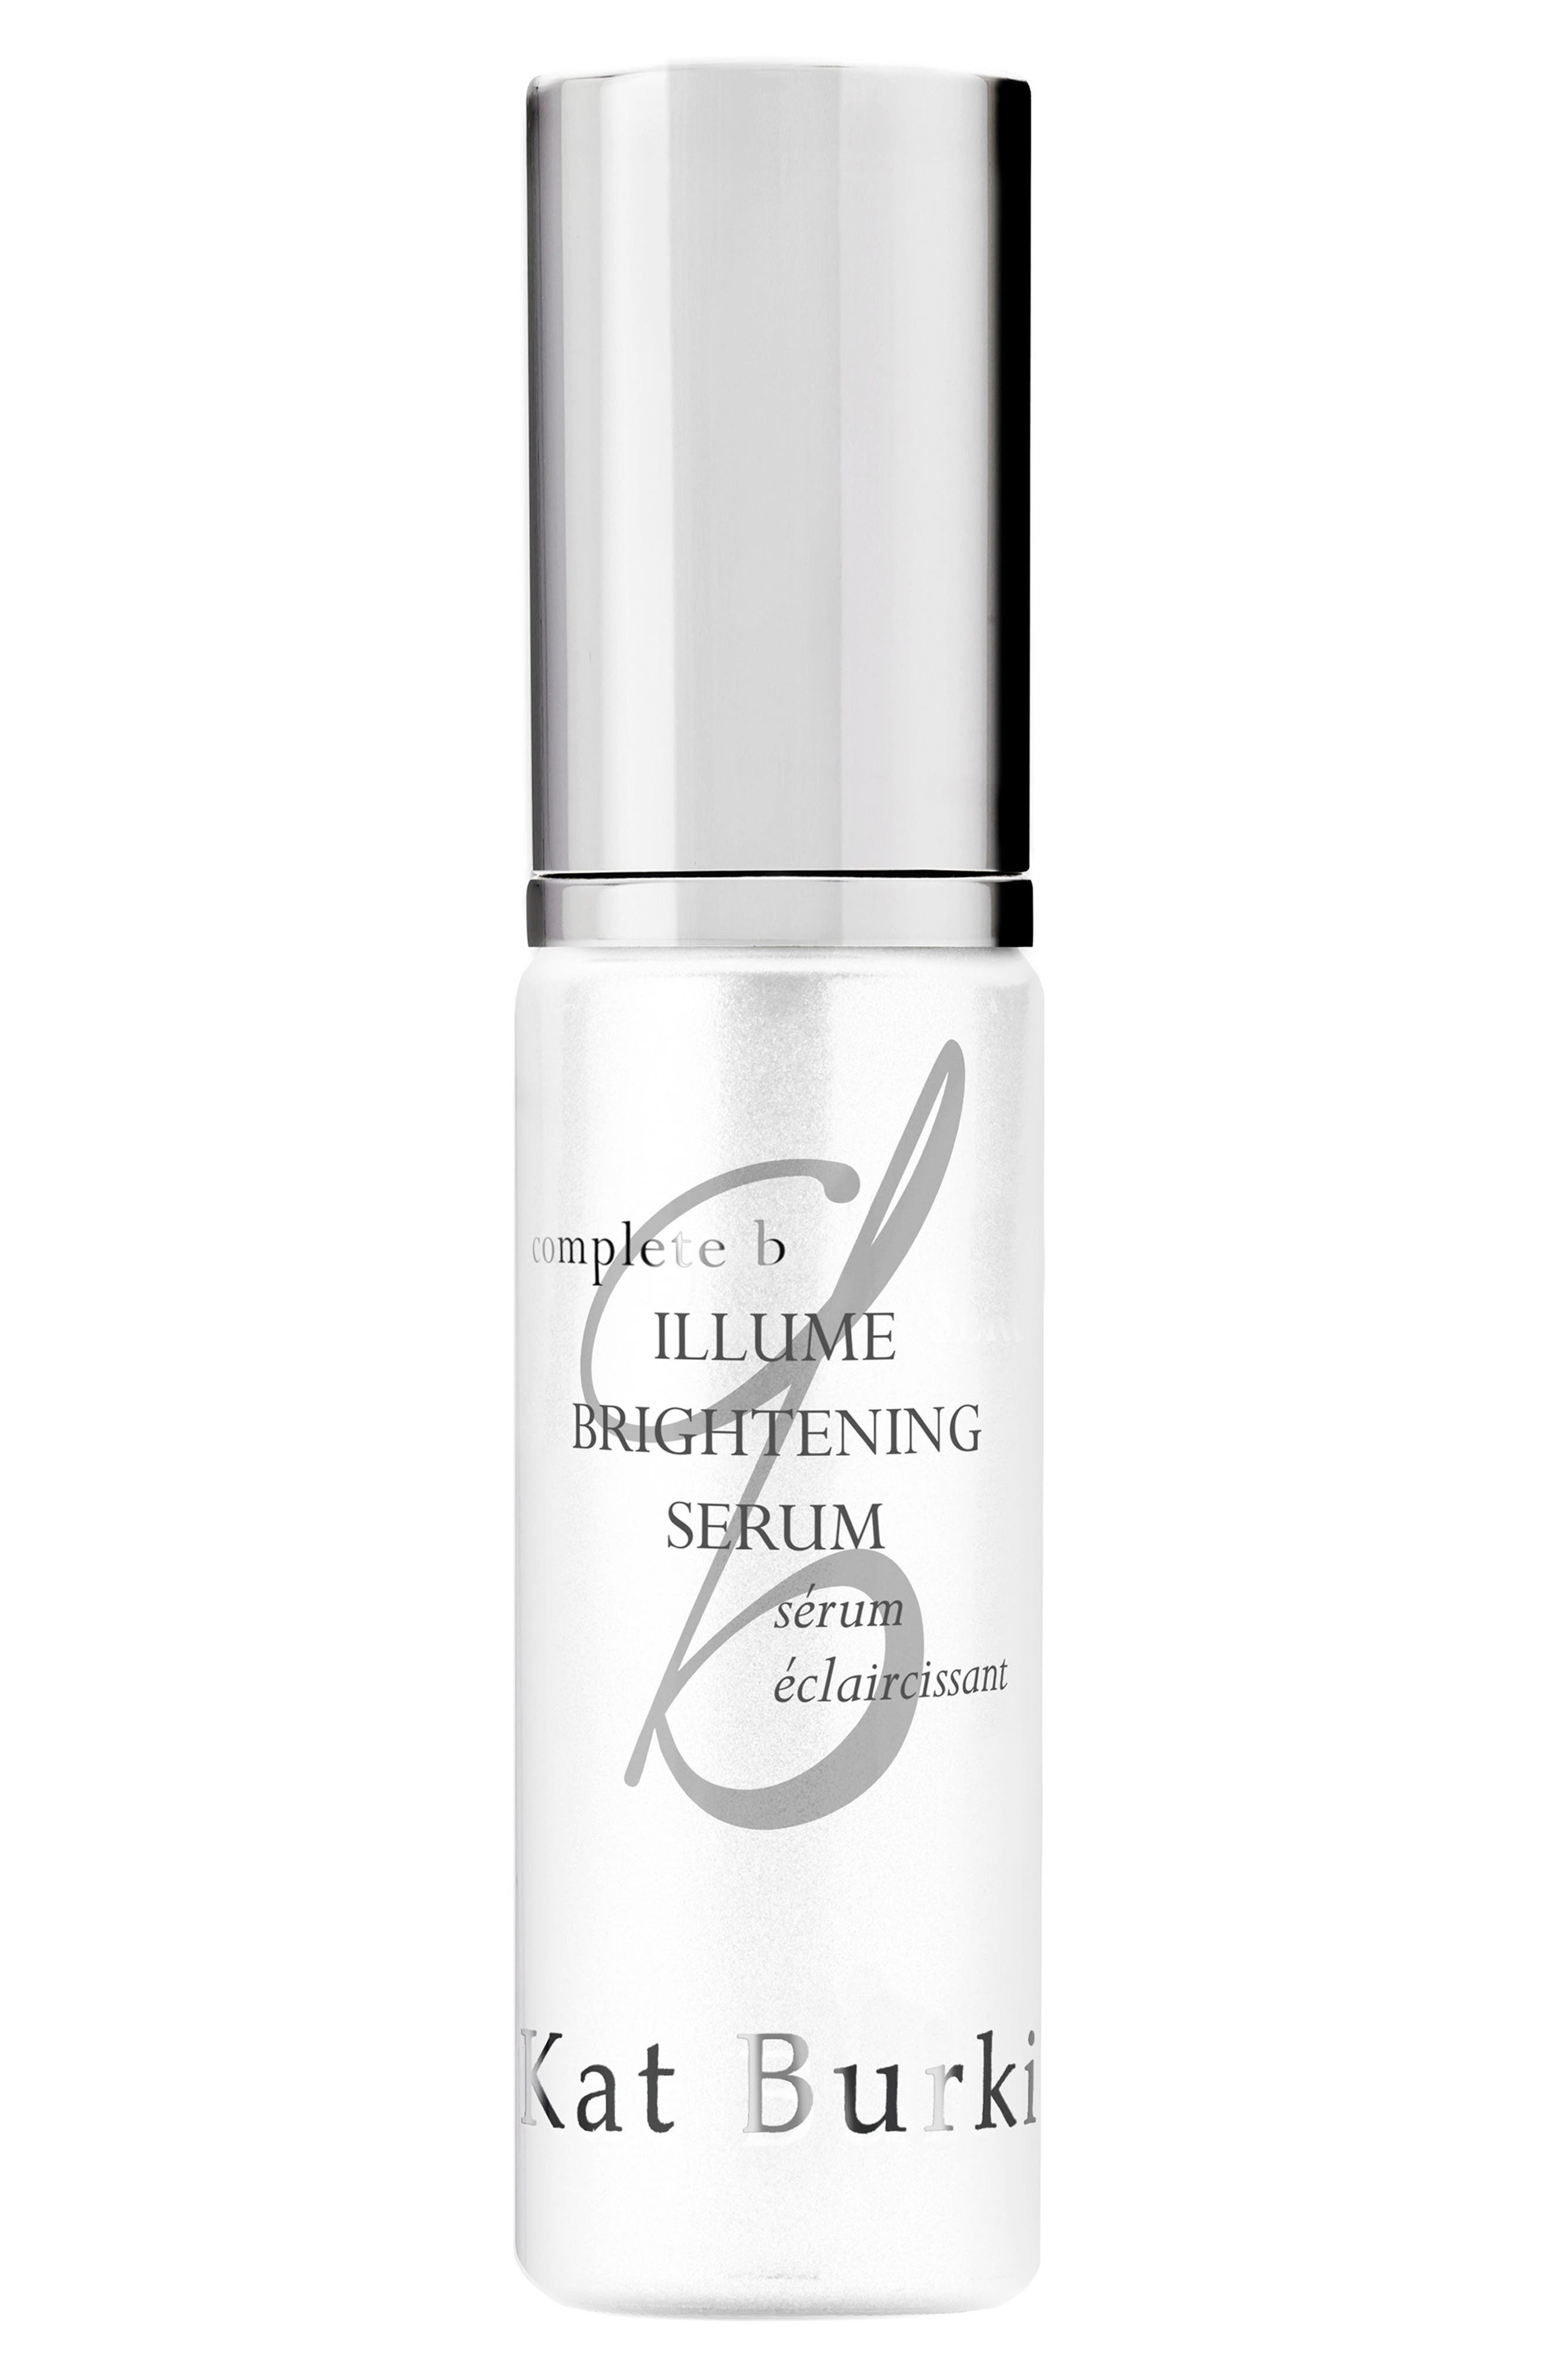 SPACE.NK.apothecary Kat Burki complete b Illume Repair Brightening Serum,                             Main thumbnail 1, color,                             NO COLOR